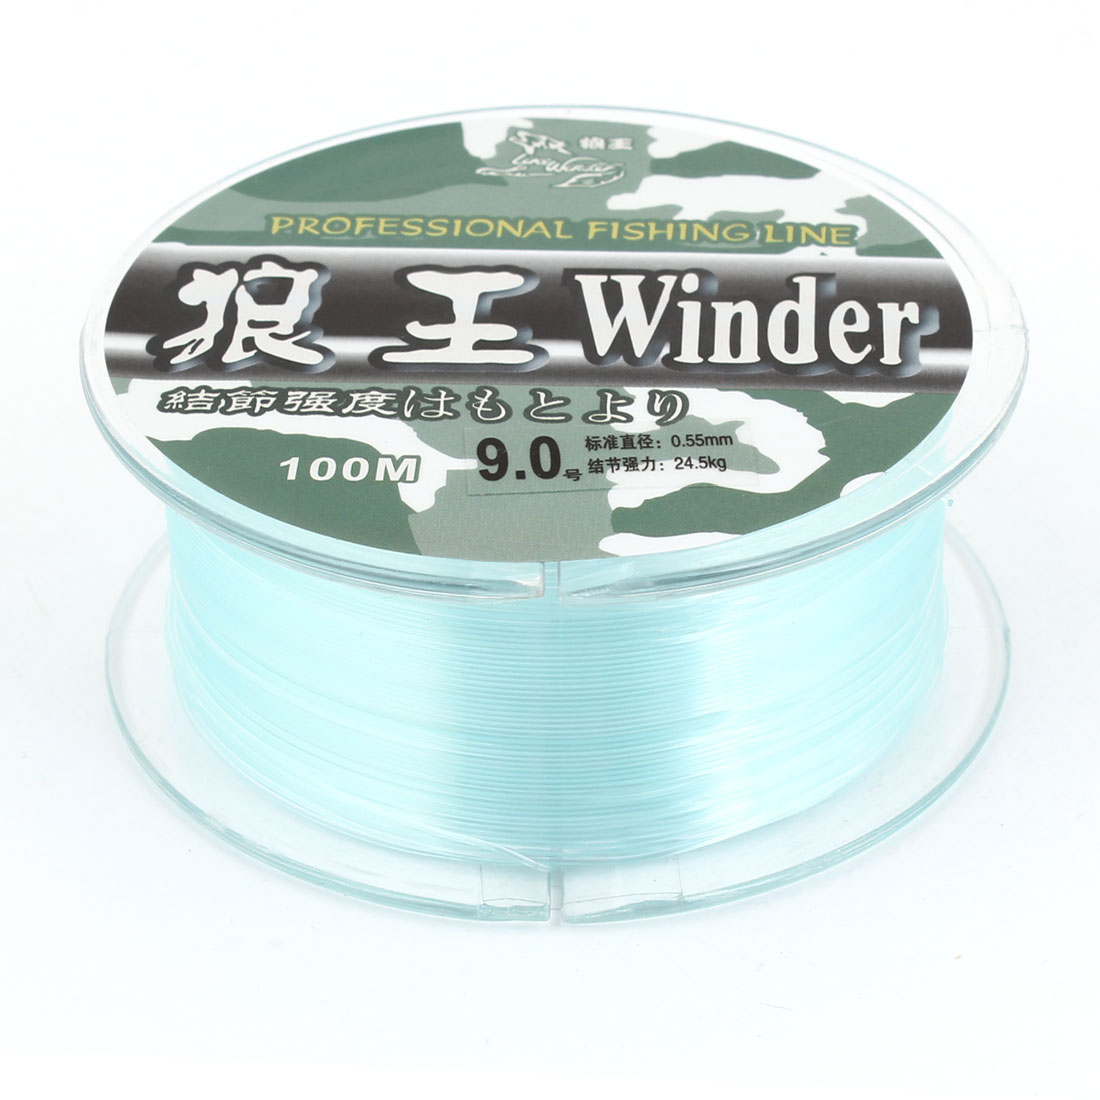 9.0# 0.55mm Diameter 100M Thread 24.5Kg 54 lb Fishing Line Spool Green